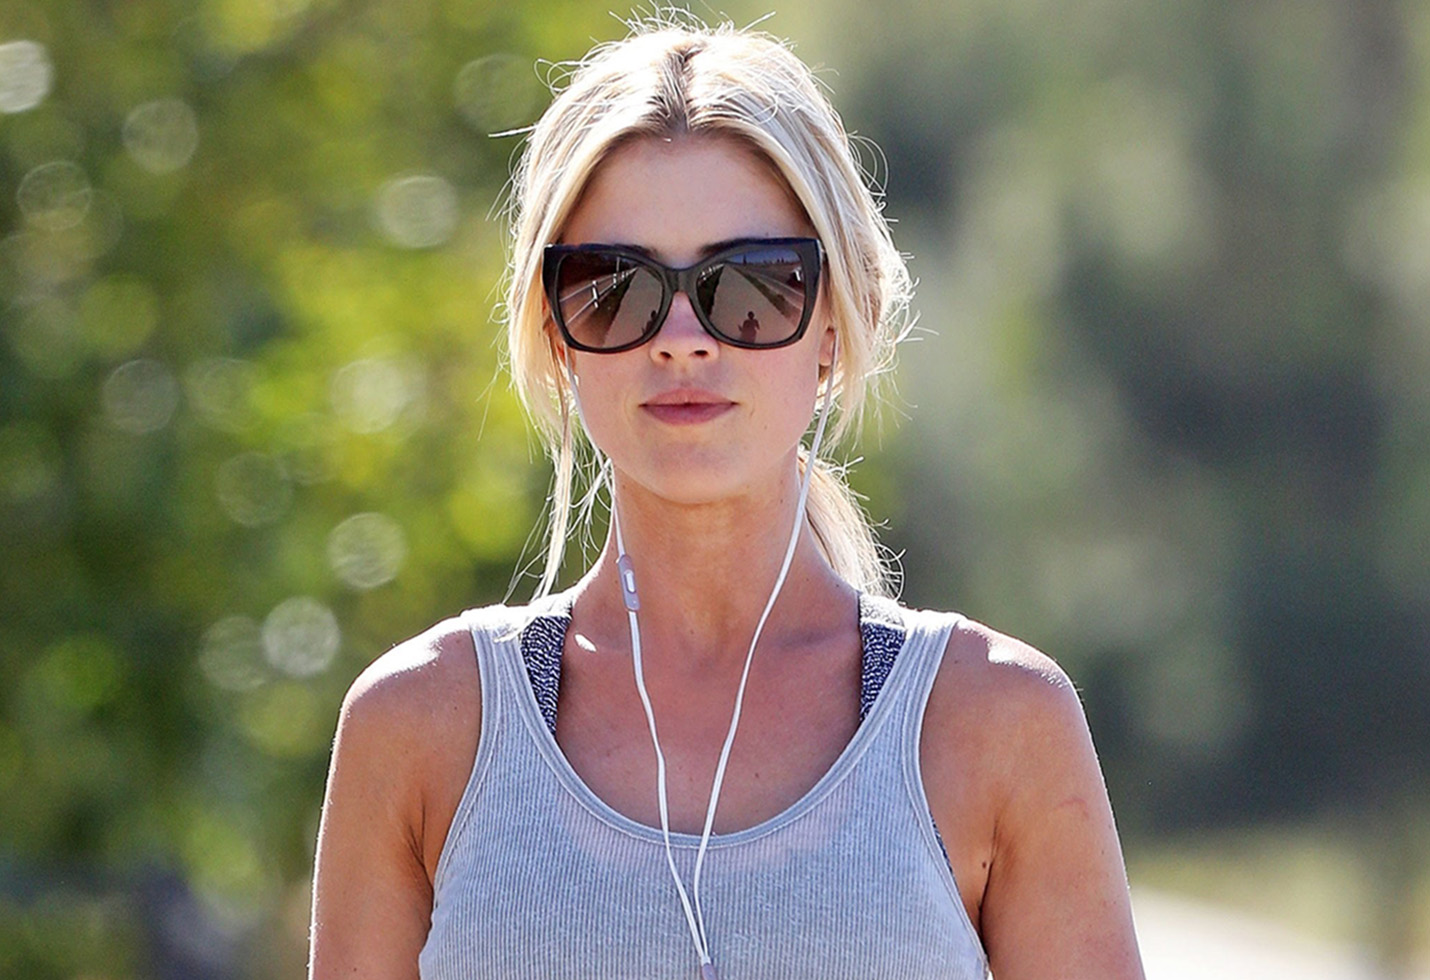 *EXCLUSIVE* Flip or Flop's Christina El Moussa looks great while hitting the pavement!